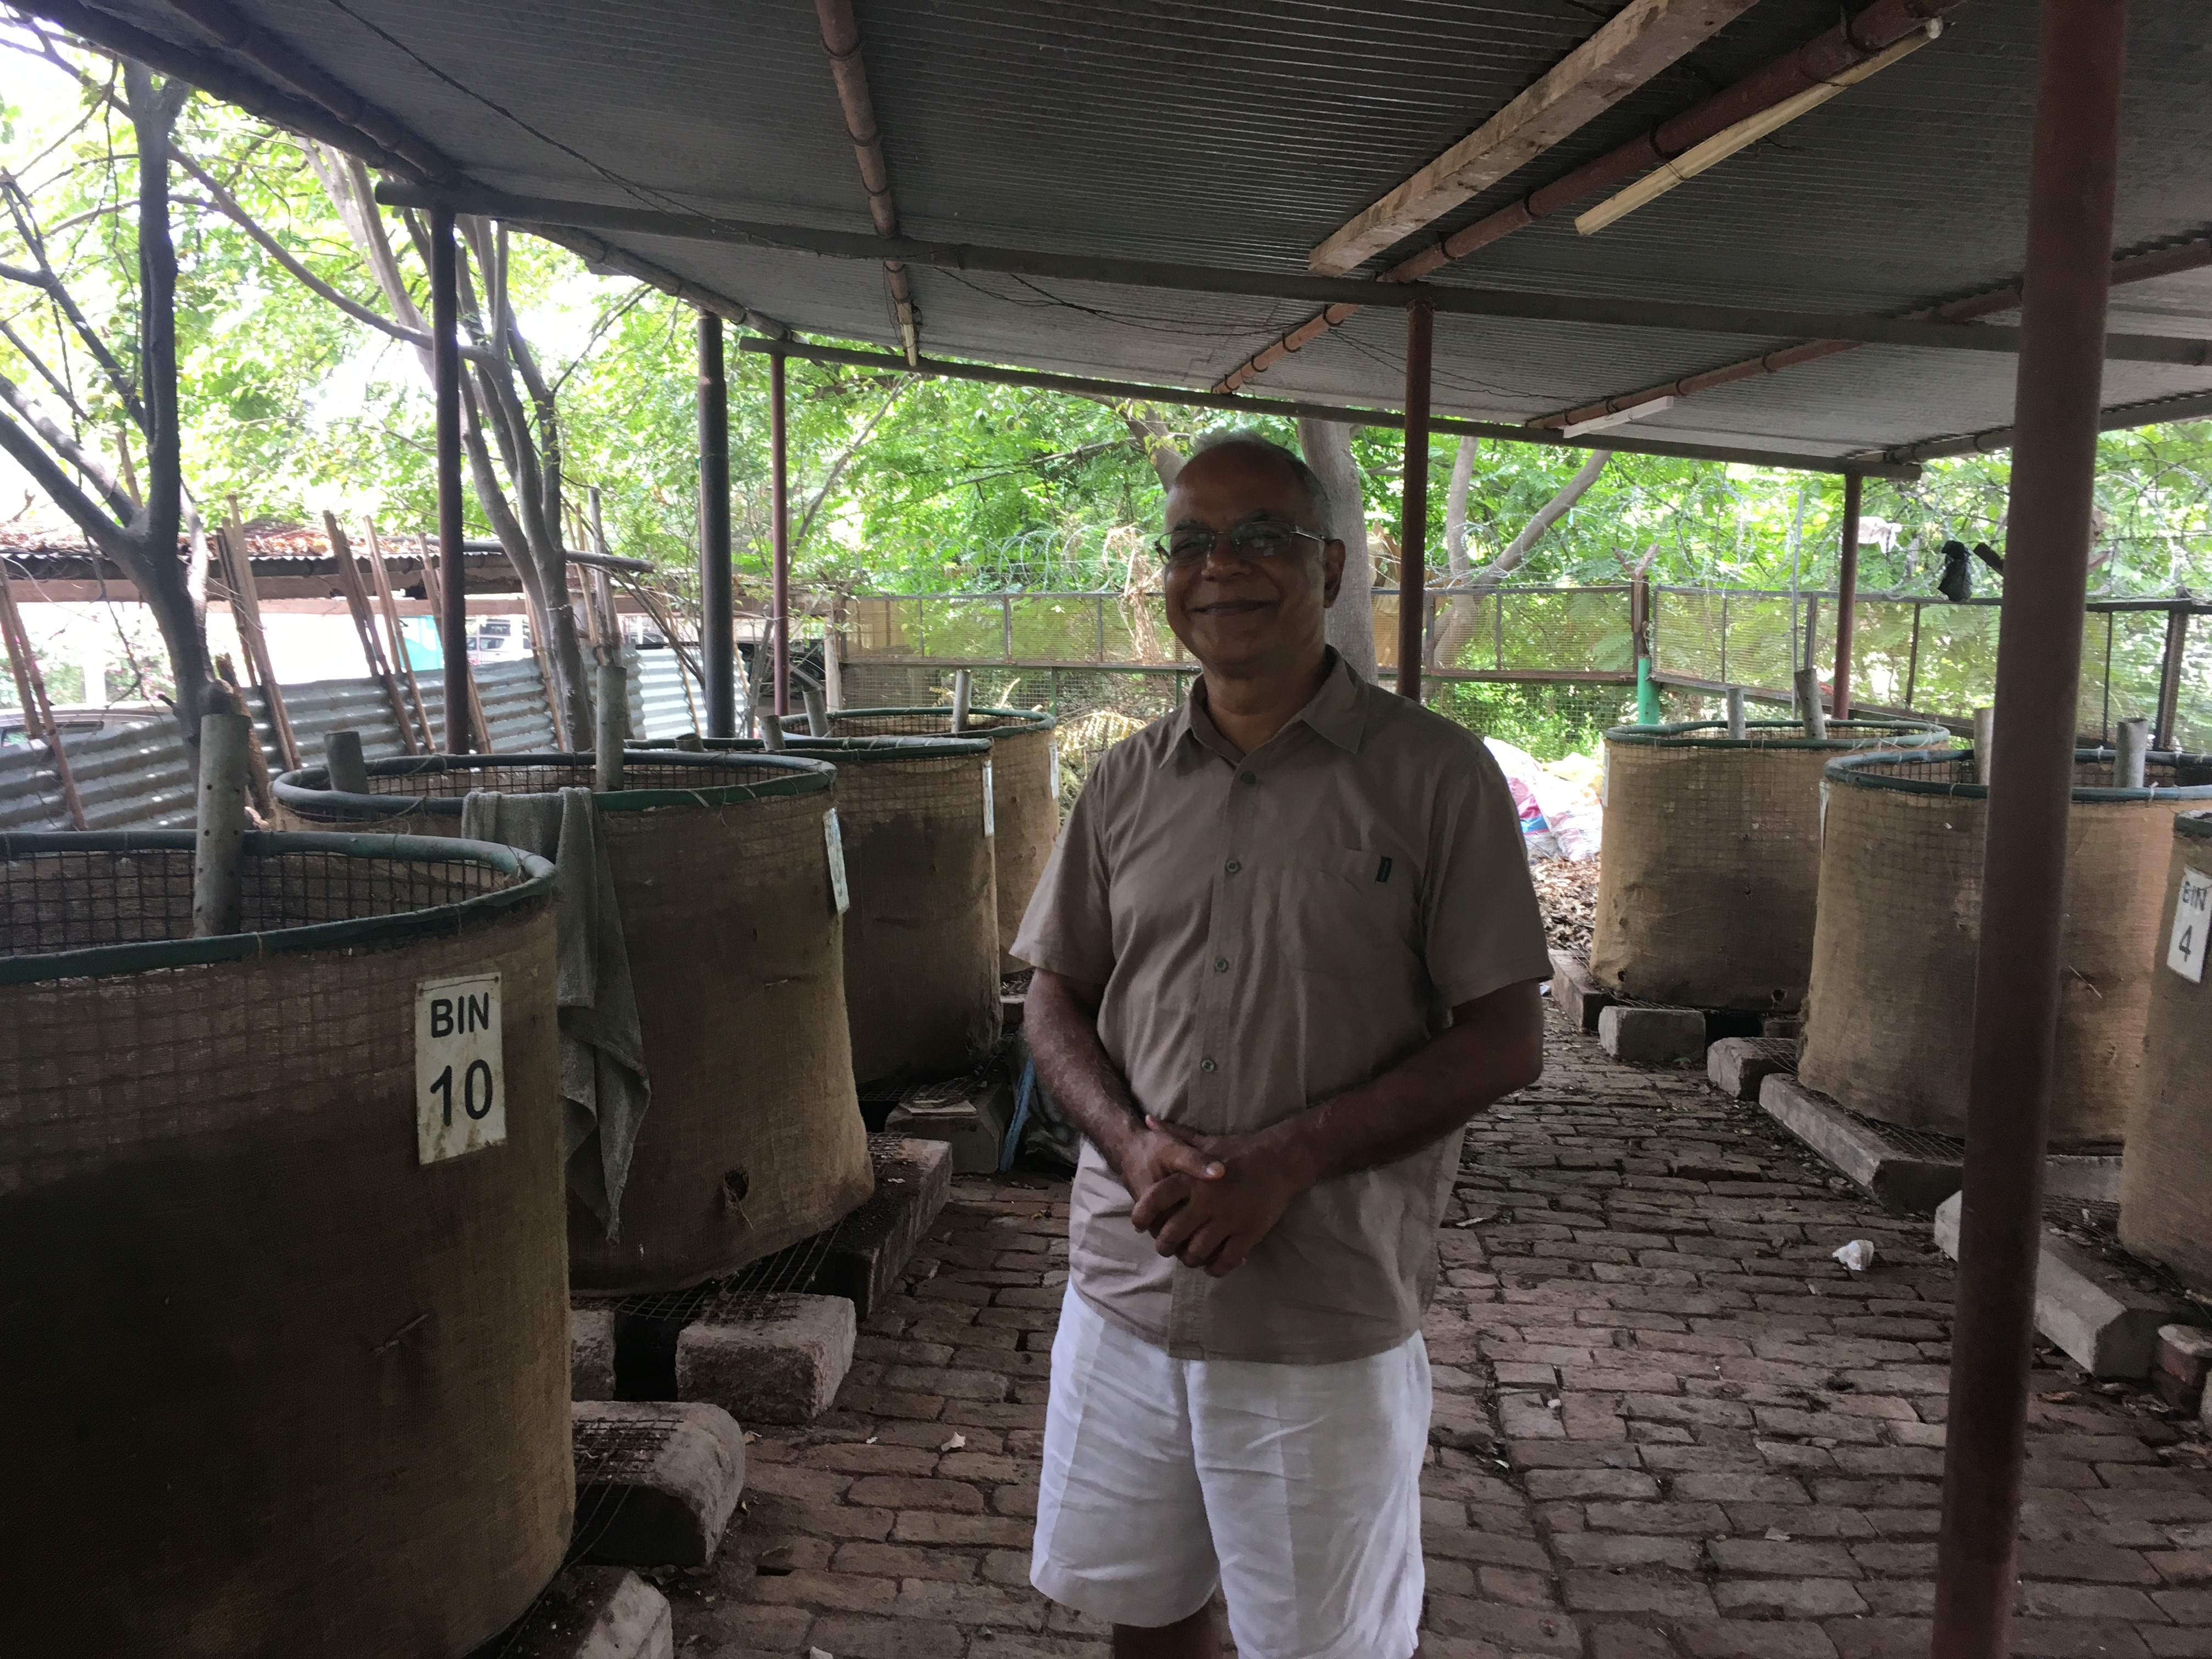 Keshav uncle standing in the composting area